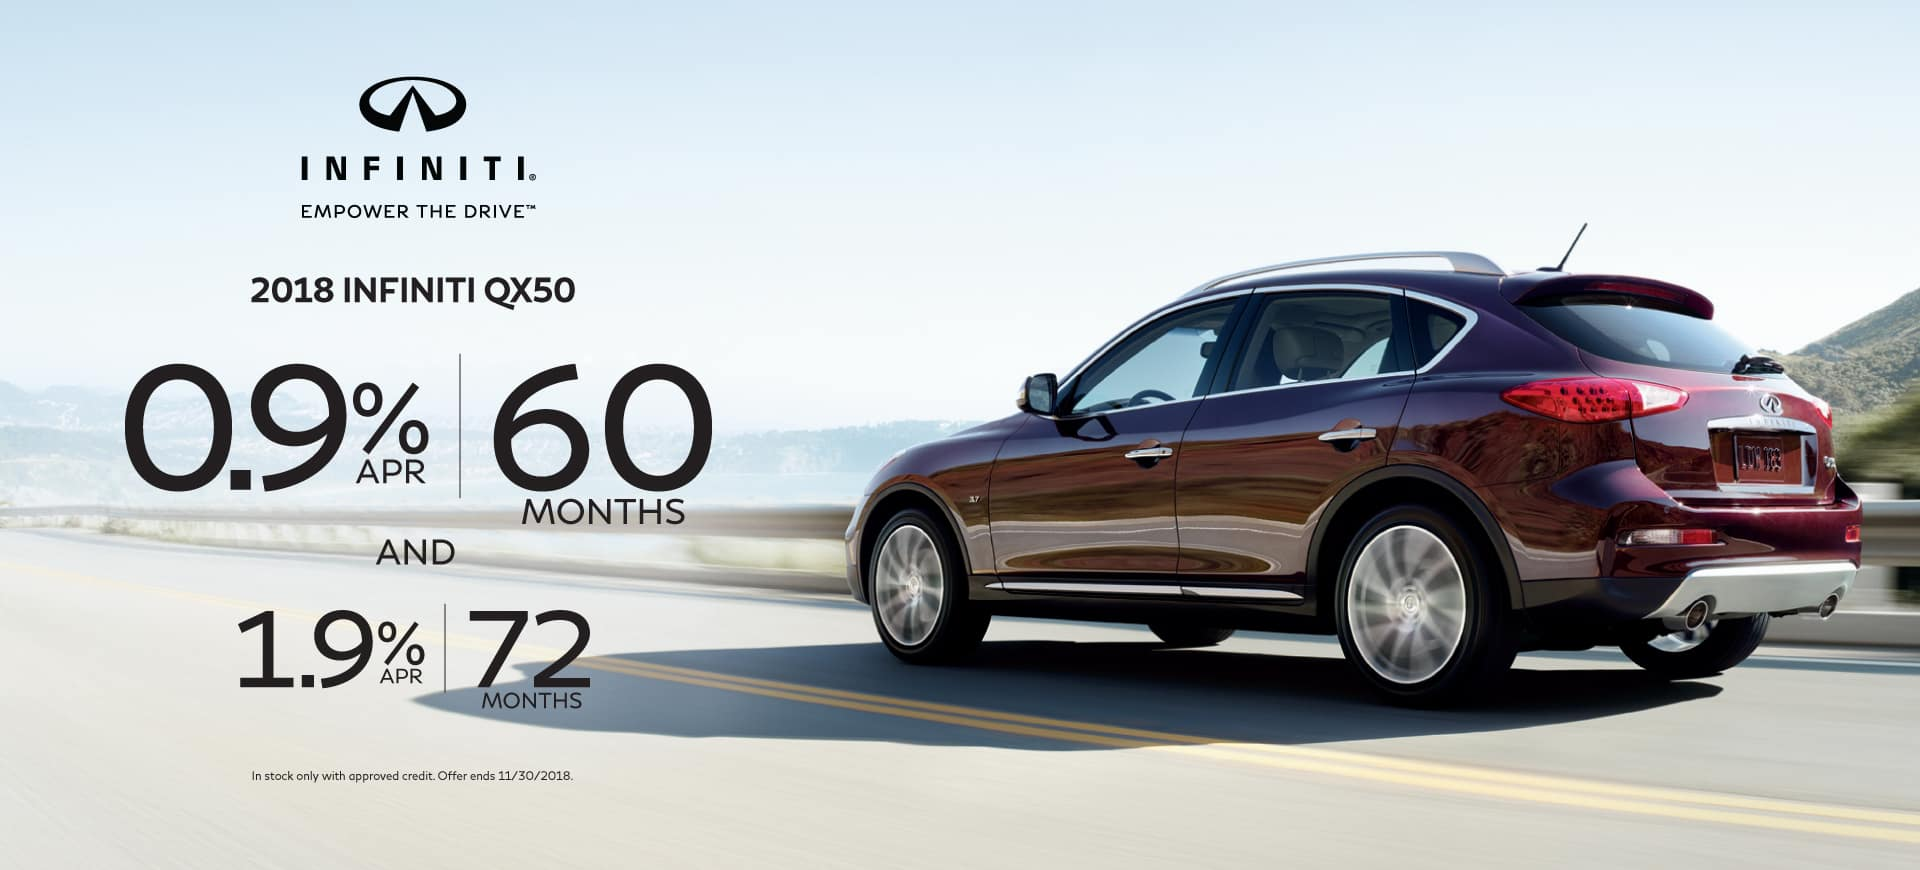 Cochran Infiniti North Hills >> INFINITI Lease Offers Wexford | New Car Lease Deals Pittsburgh